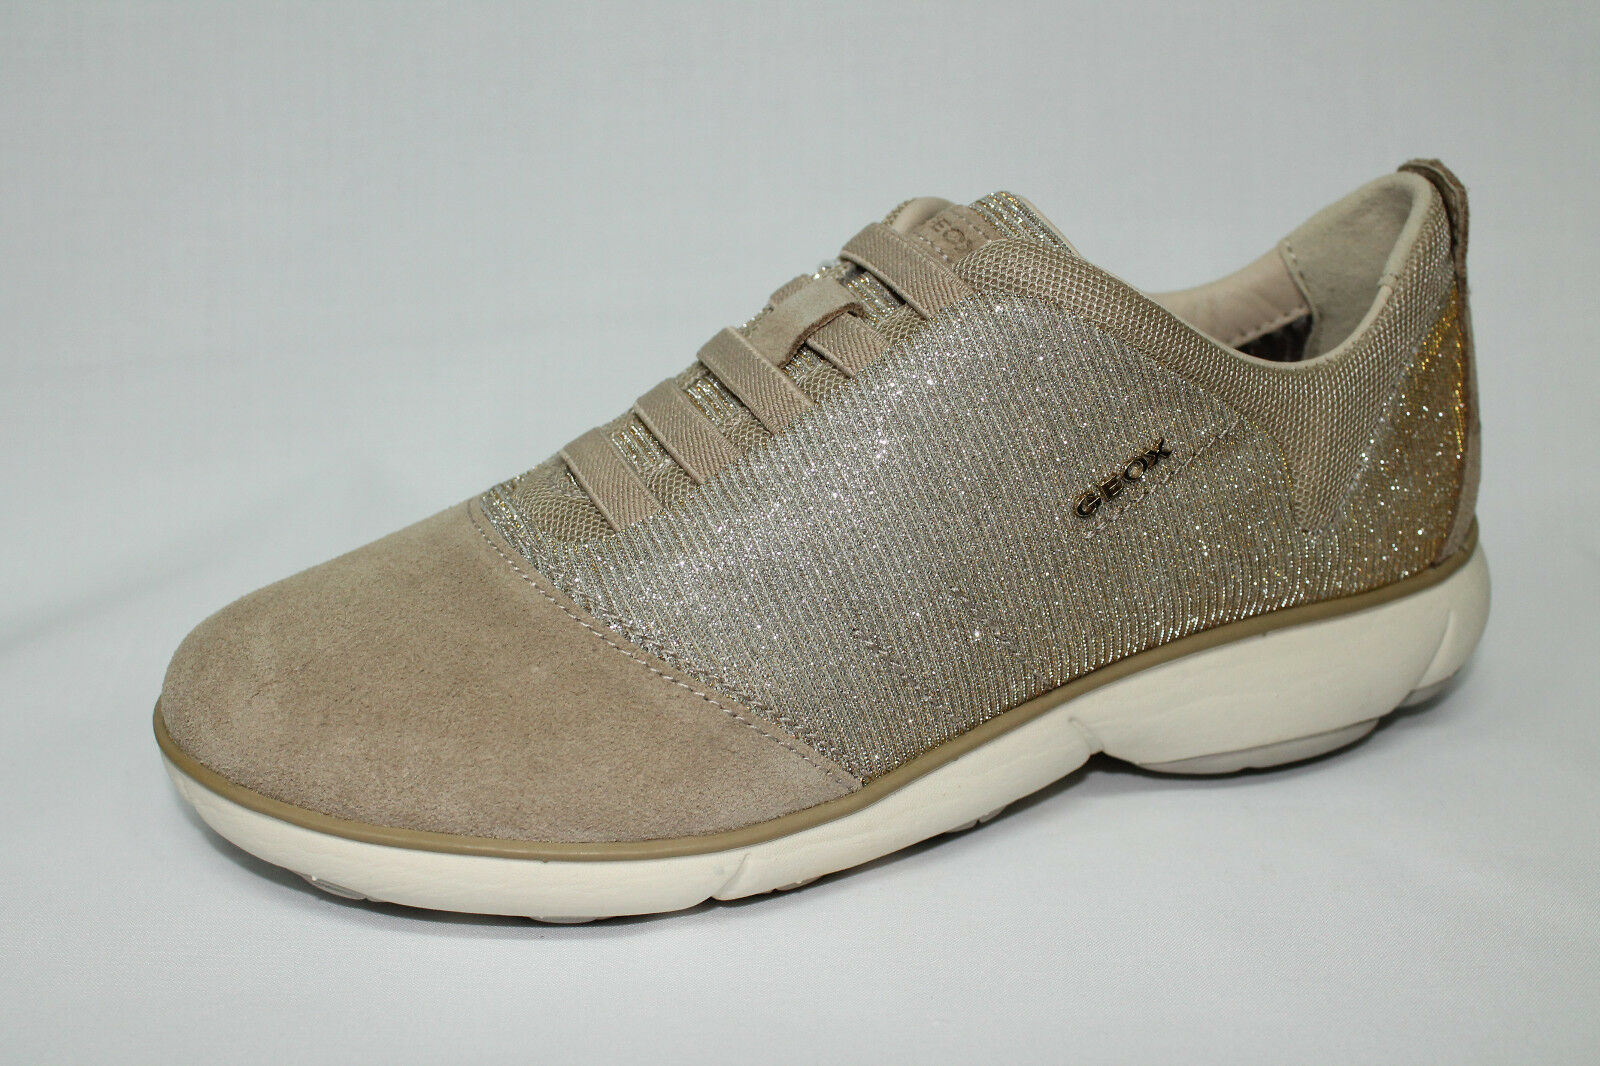 Sneakers Geox D Nebula G Suede and Fabric with Glitter list  129,90 - 20%